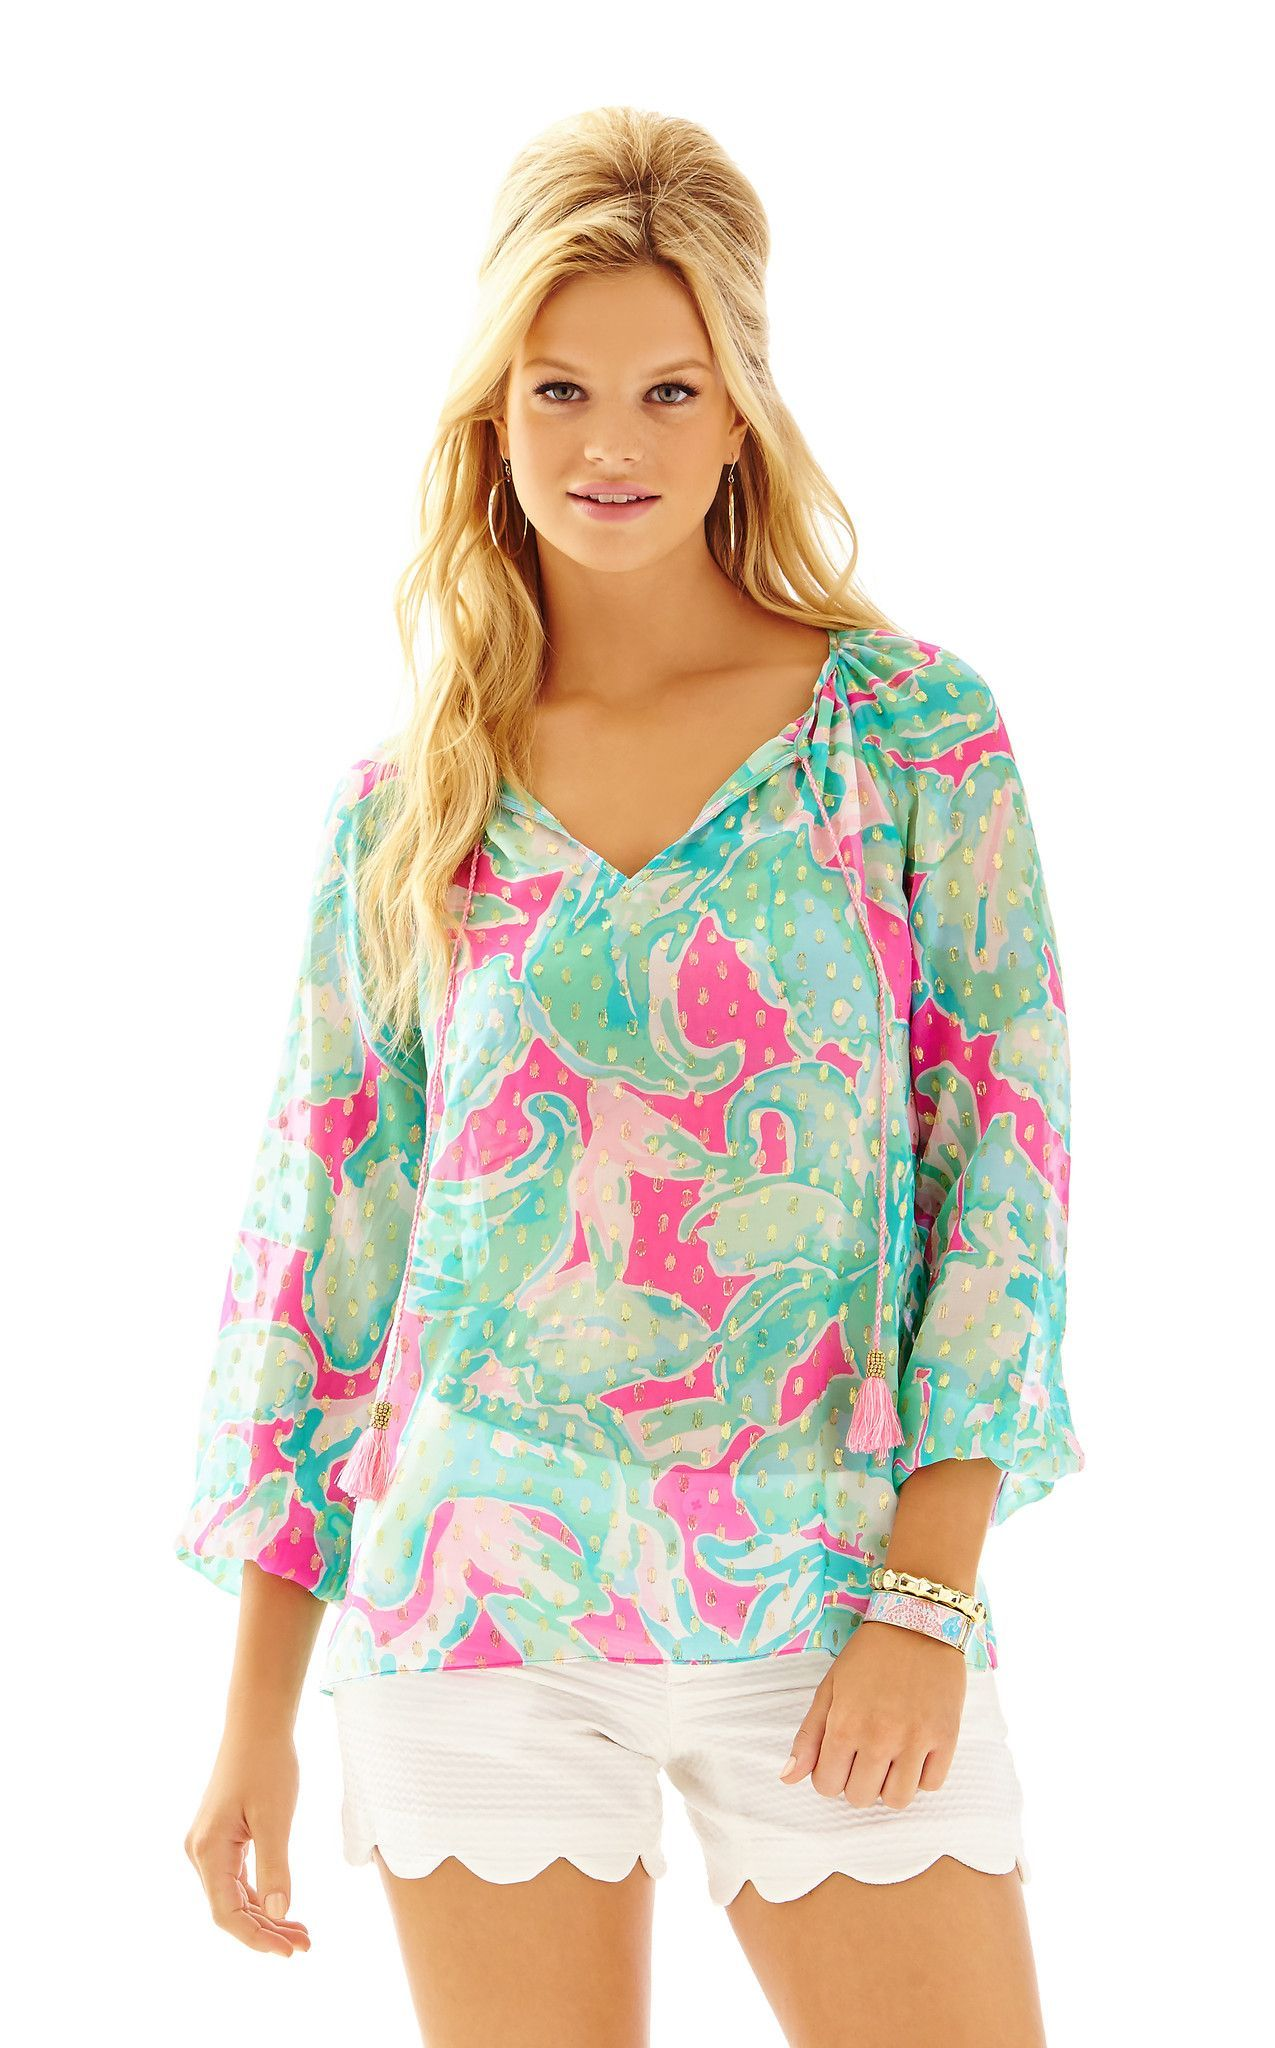 Rilla Top in Tropical Pink Pink Sands